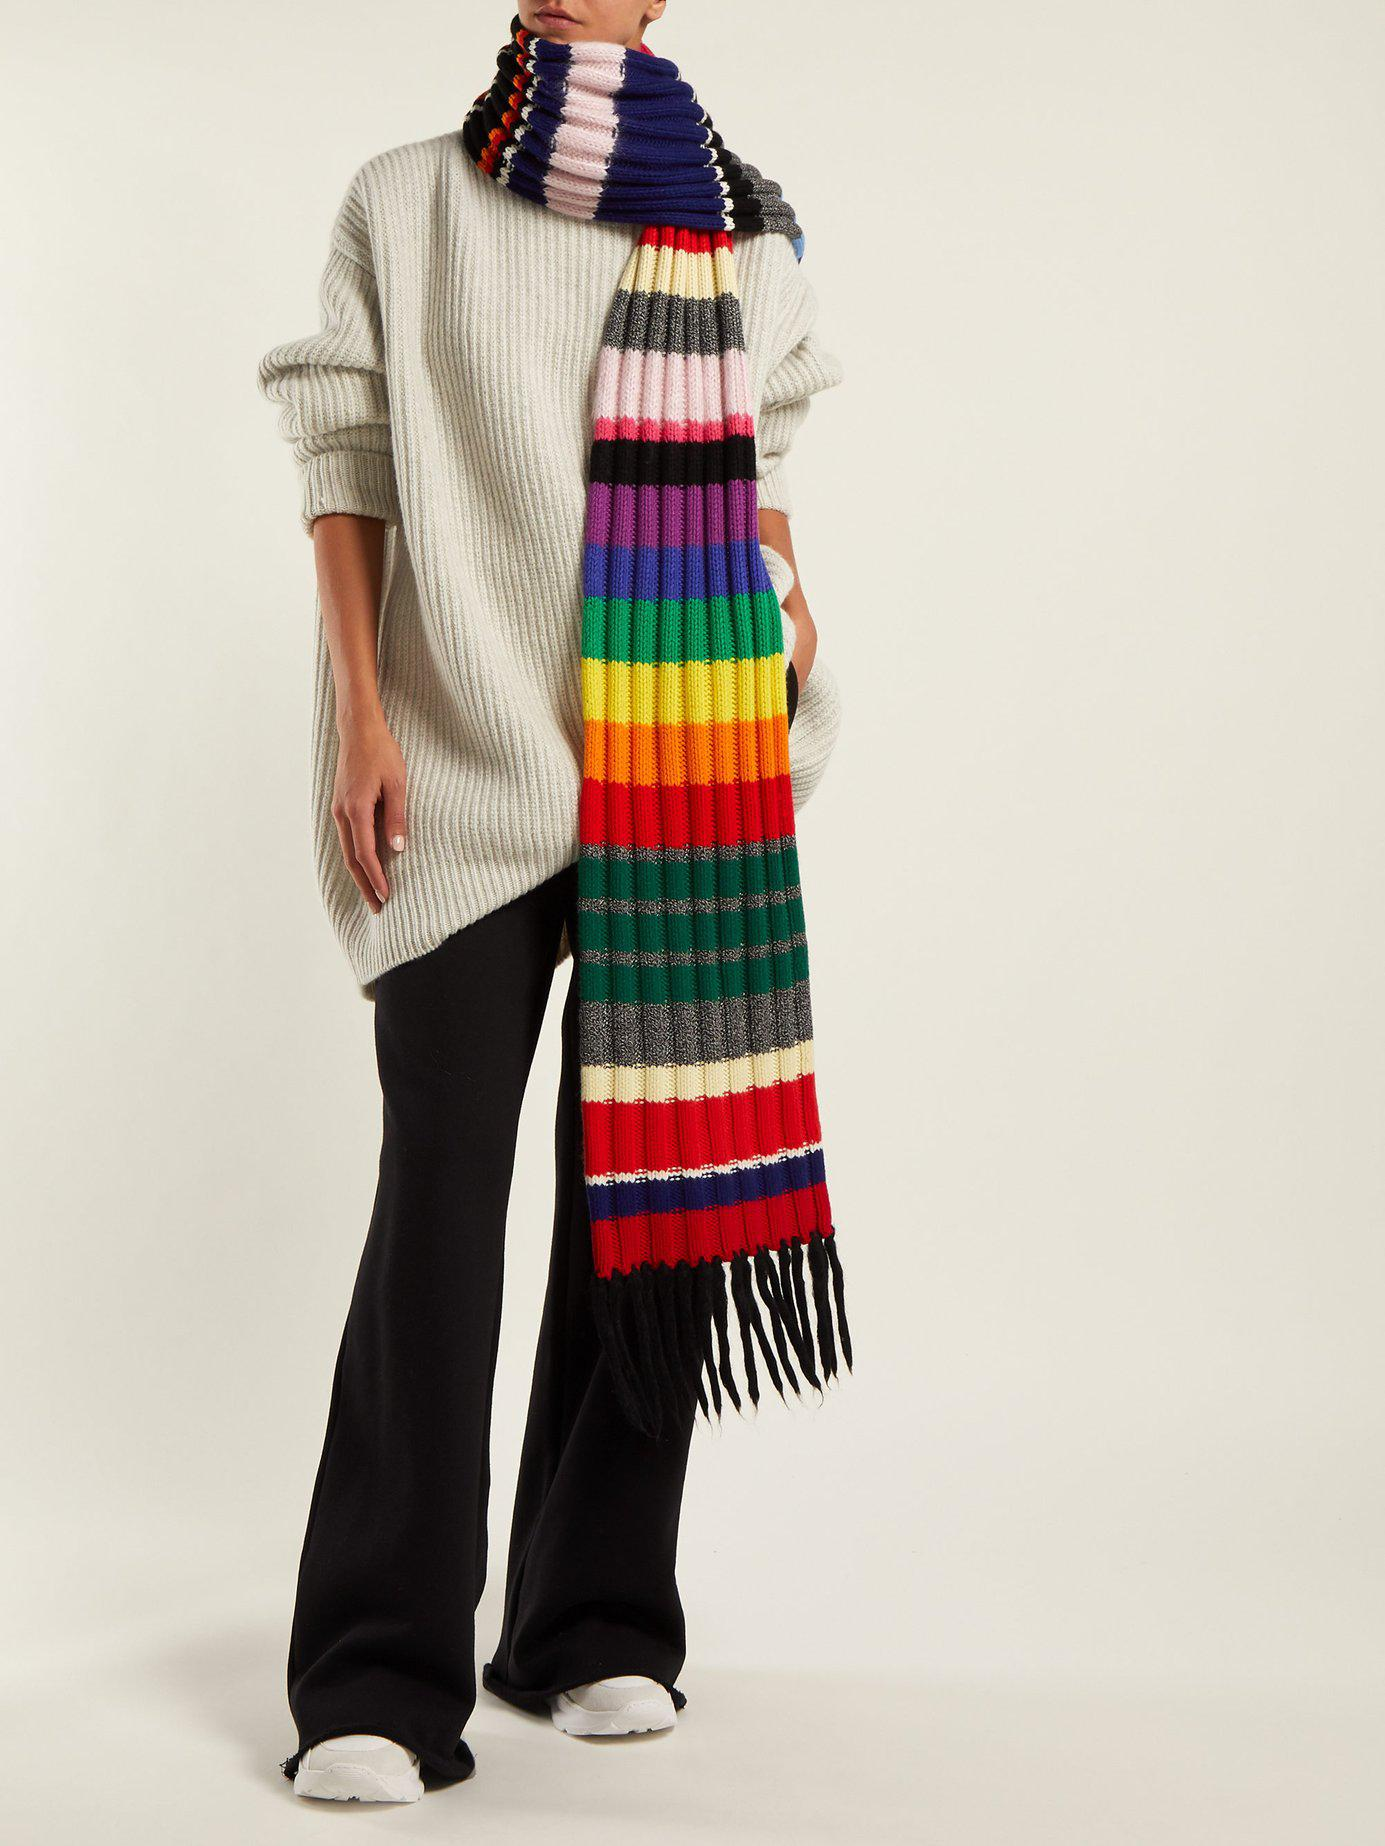 41a1a75072 Lyst - Burberry Rainbow Striped Cashmere Blend Scarf in Red